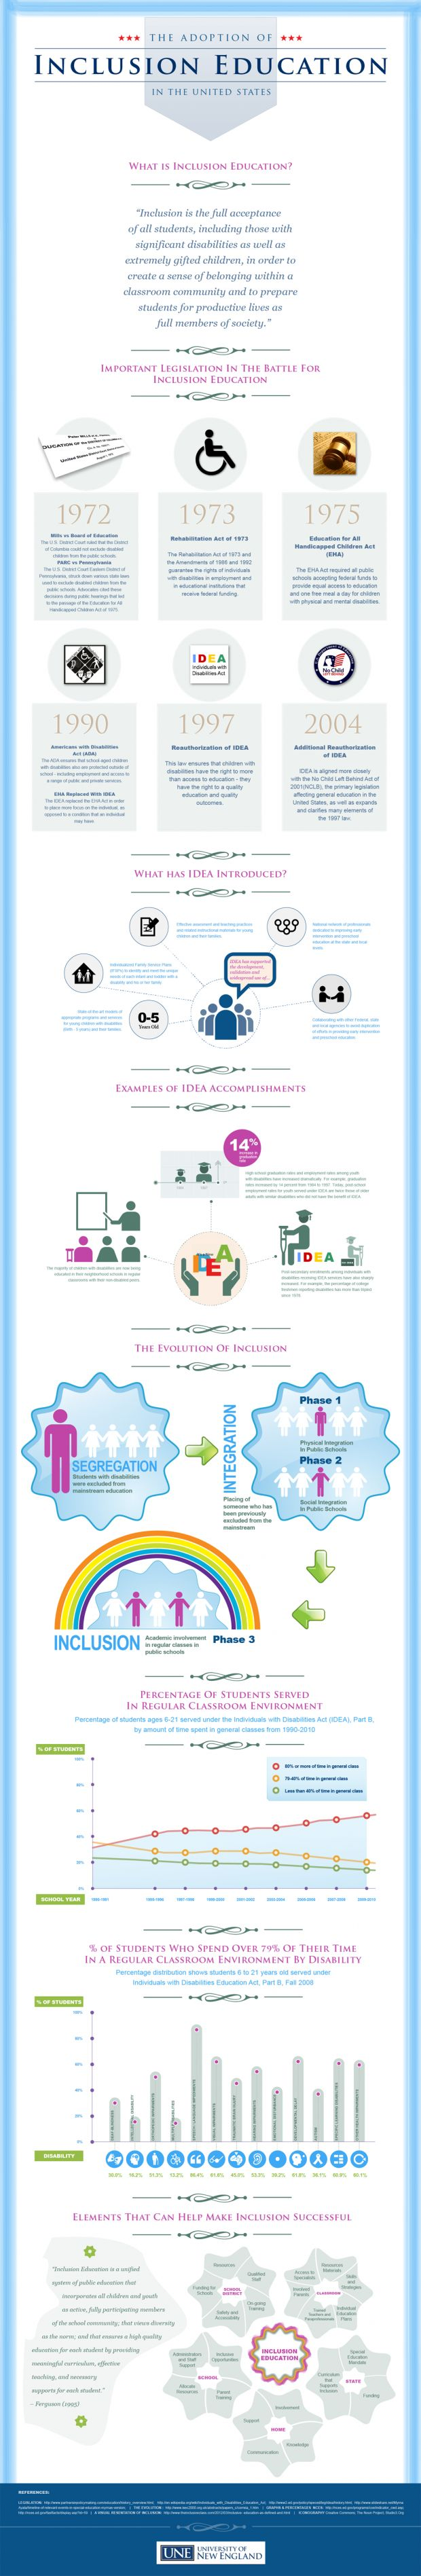 """The Adoption of Inclusion Education in the United States""  (#INFOGRAPHIC)"